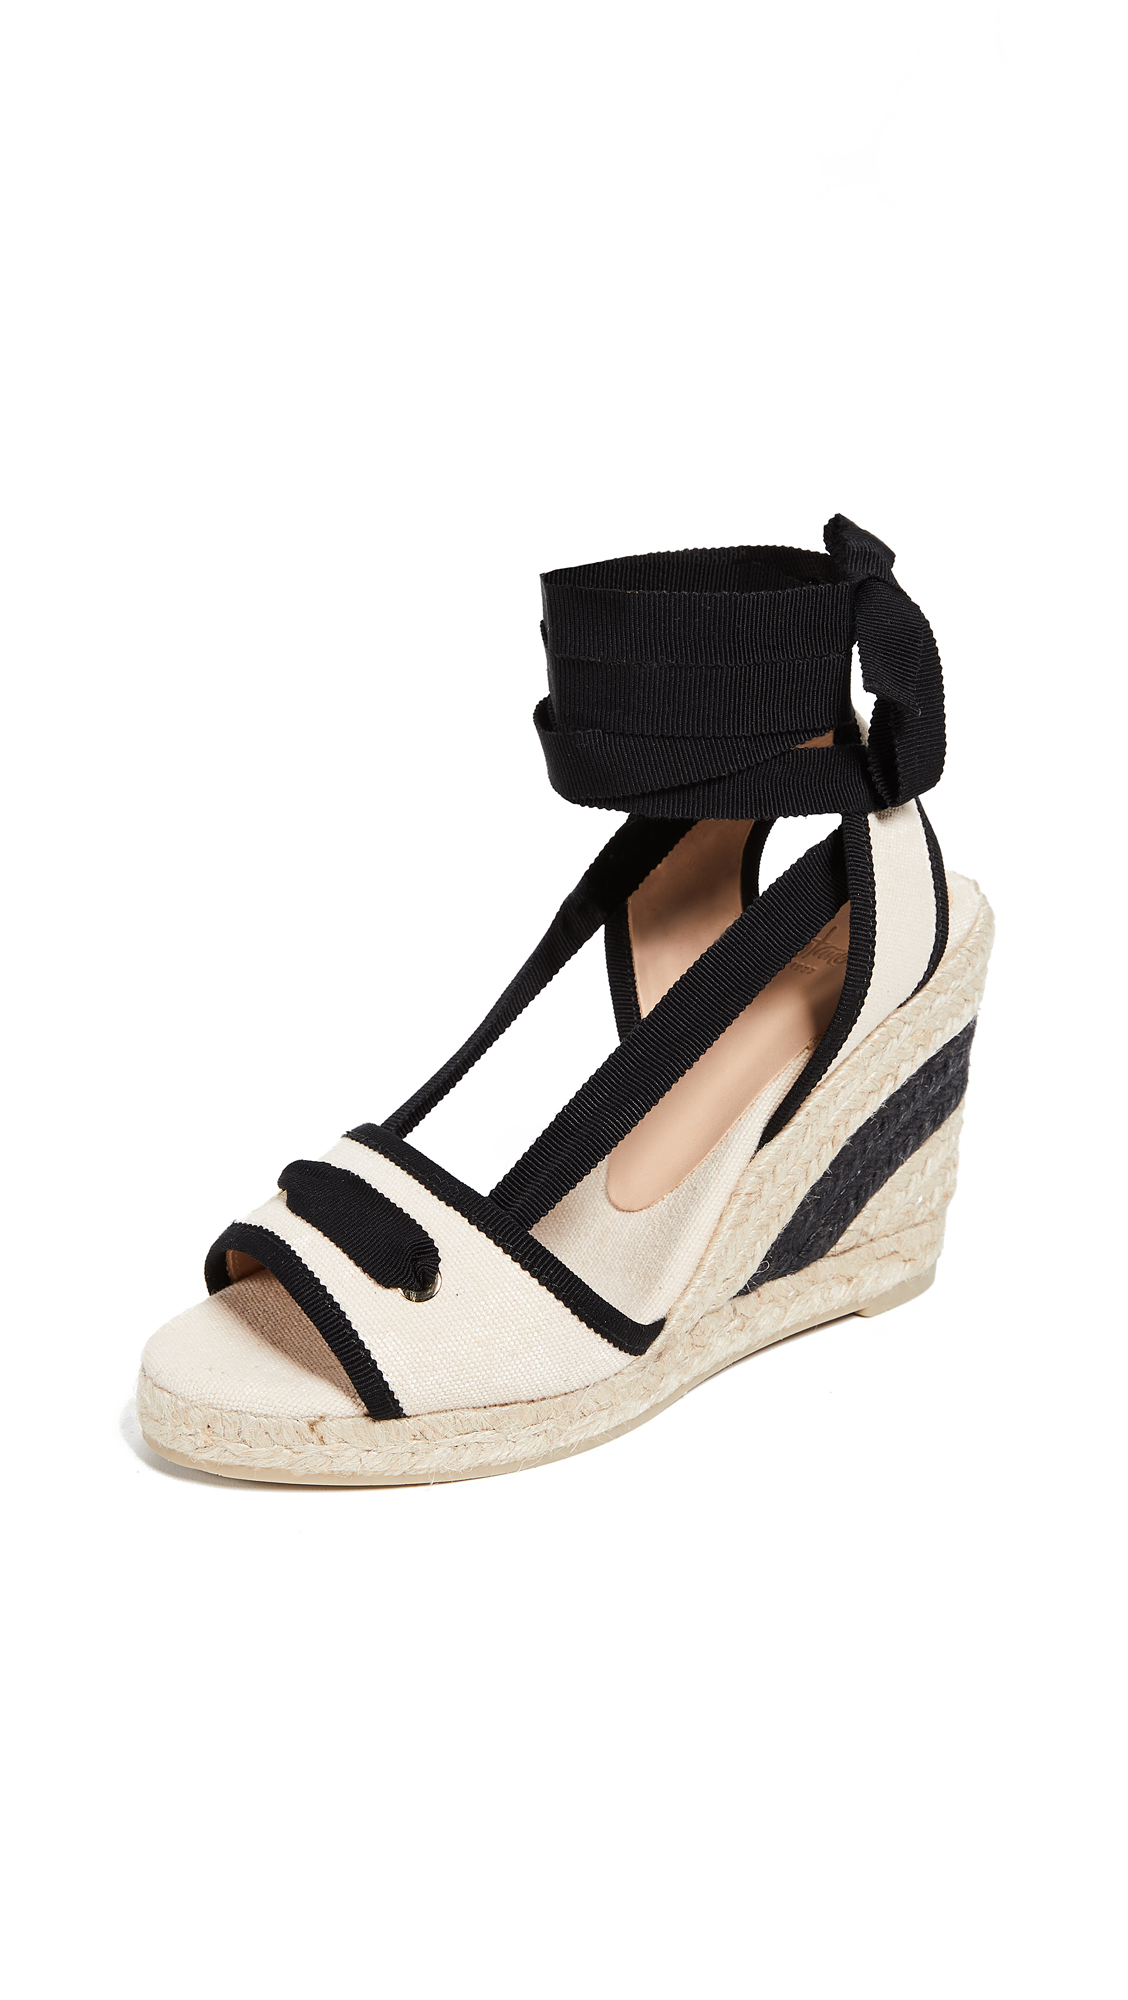 Castaner Grosella Wedge Sandals